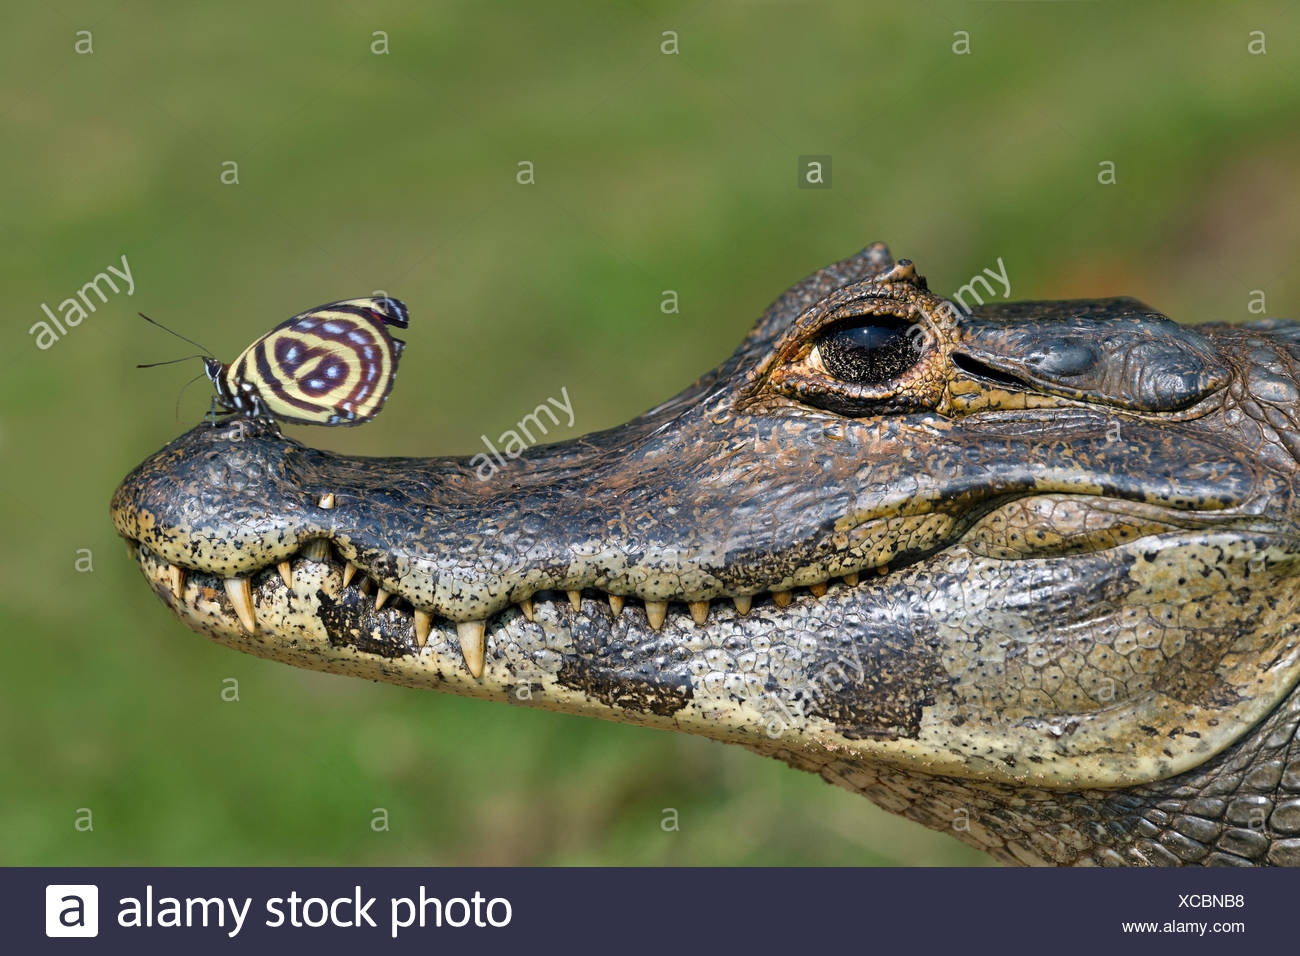 Yacare Caiman (Caiman yacare) with butterfly (Paulogramma pyracmon) resting on its snout, Pantanal, Brazil. - Stock Image